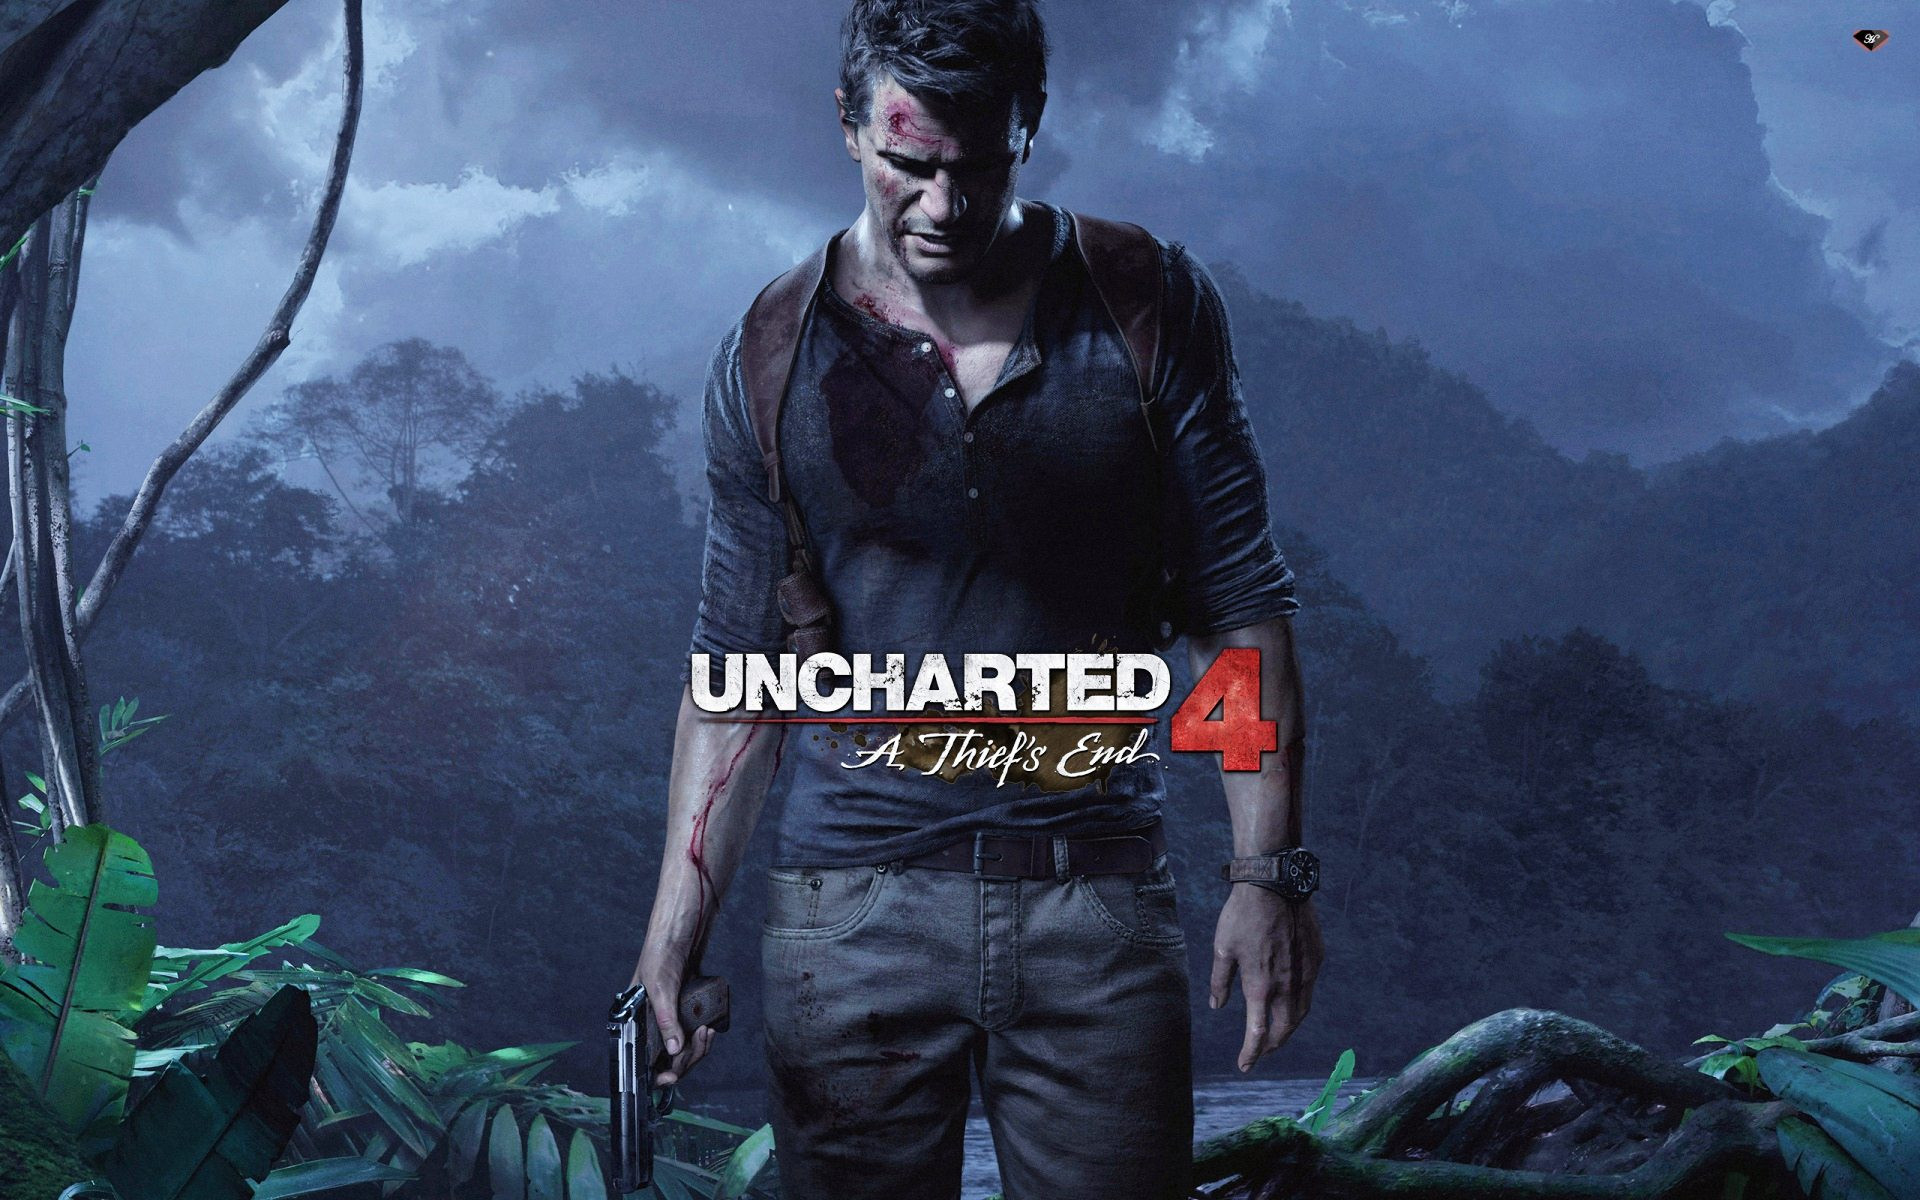 1491486449_uncharted-4-a-thiefs-end.jpg